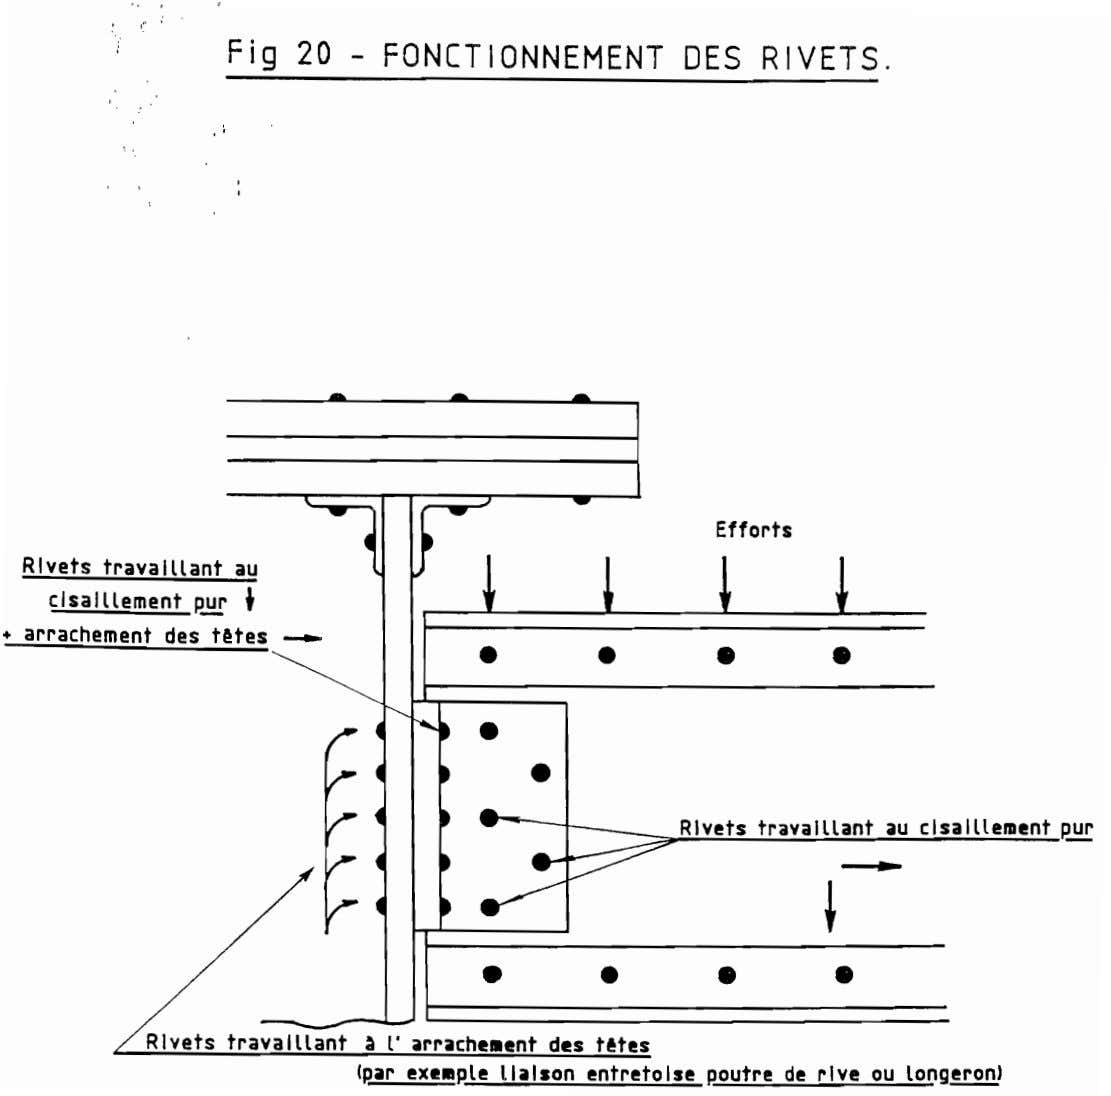 ", l"" Fig 20 - FONCTIONNEMENT DES RIVETS. Efforts Rivets travaillant au + cisaIllement Rur"